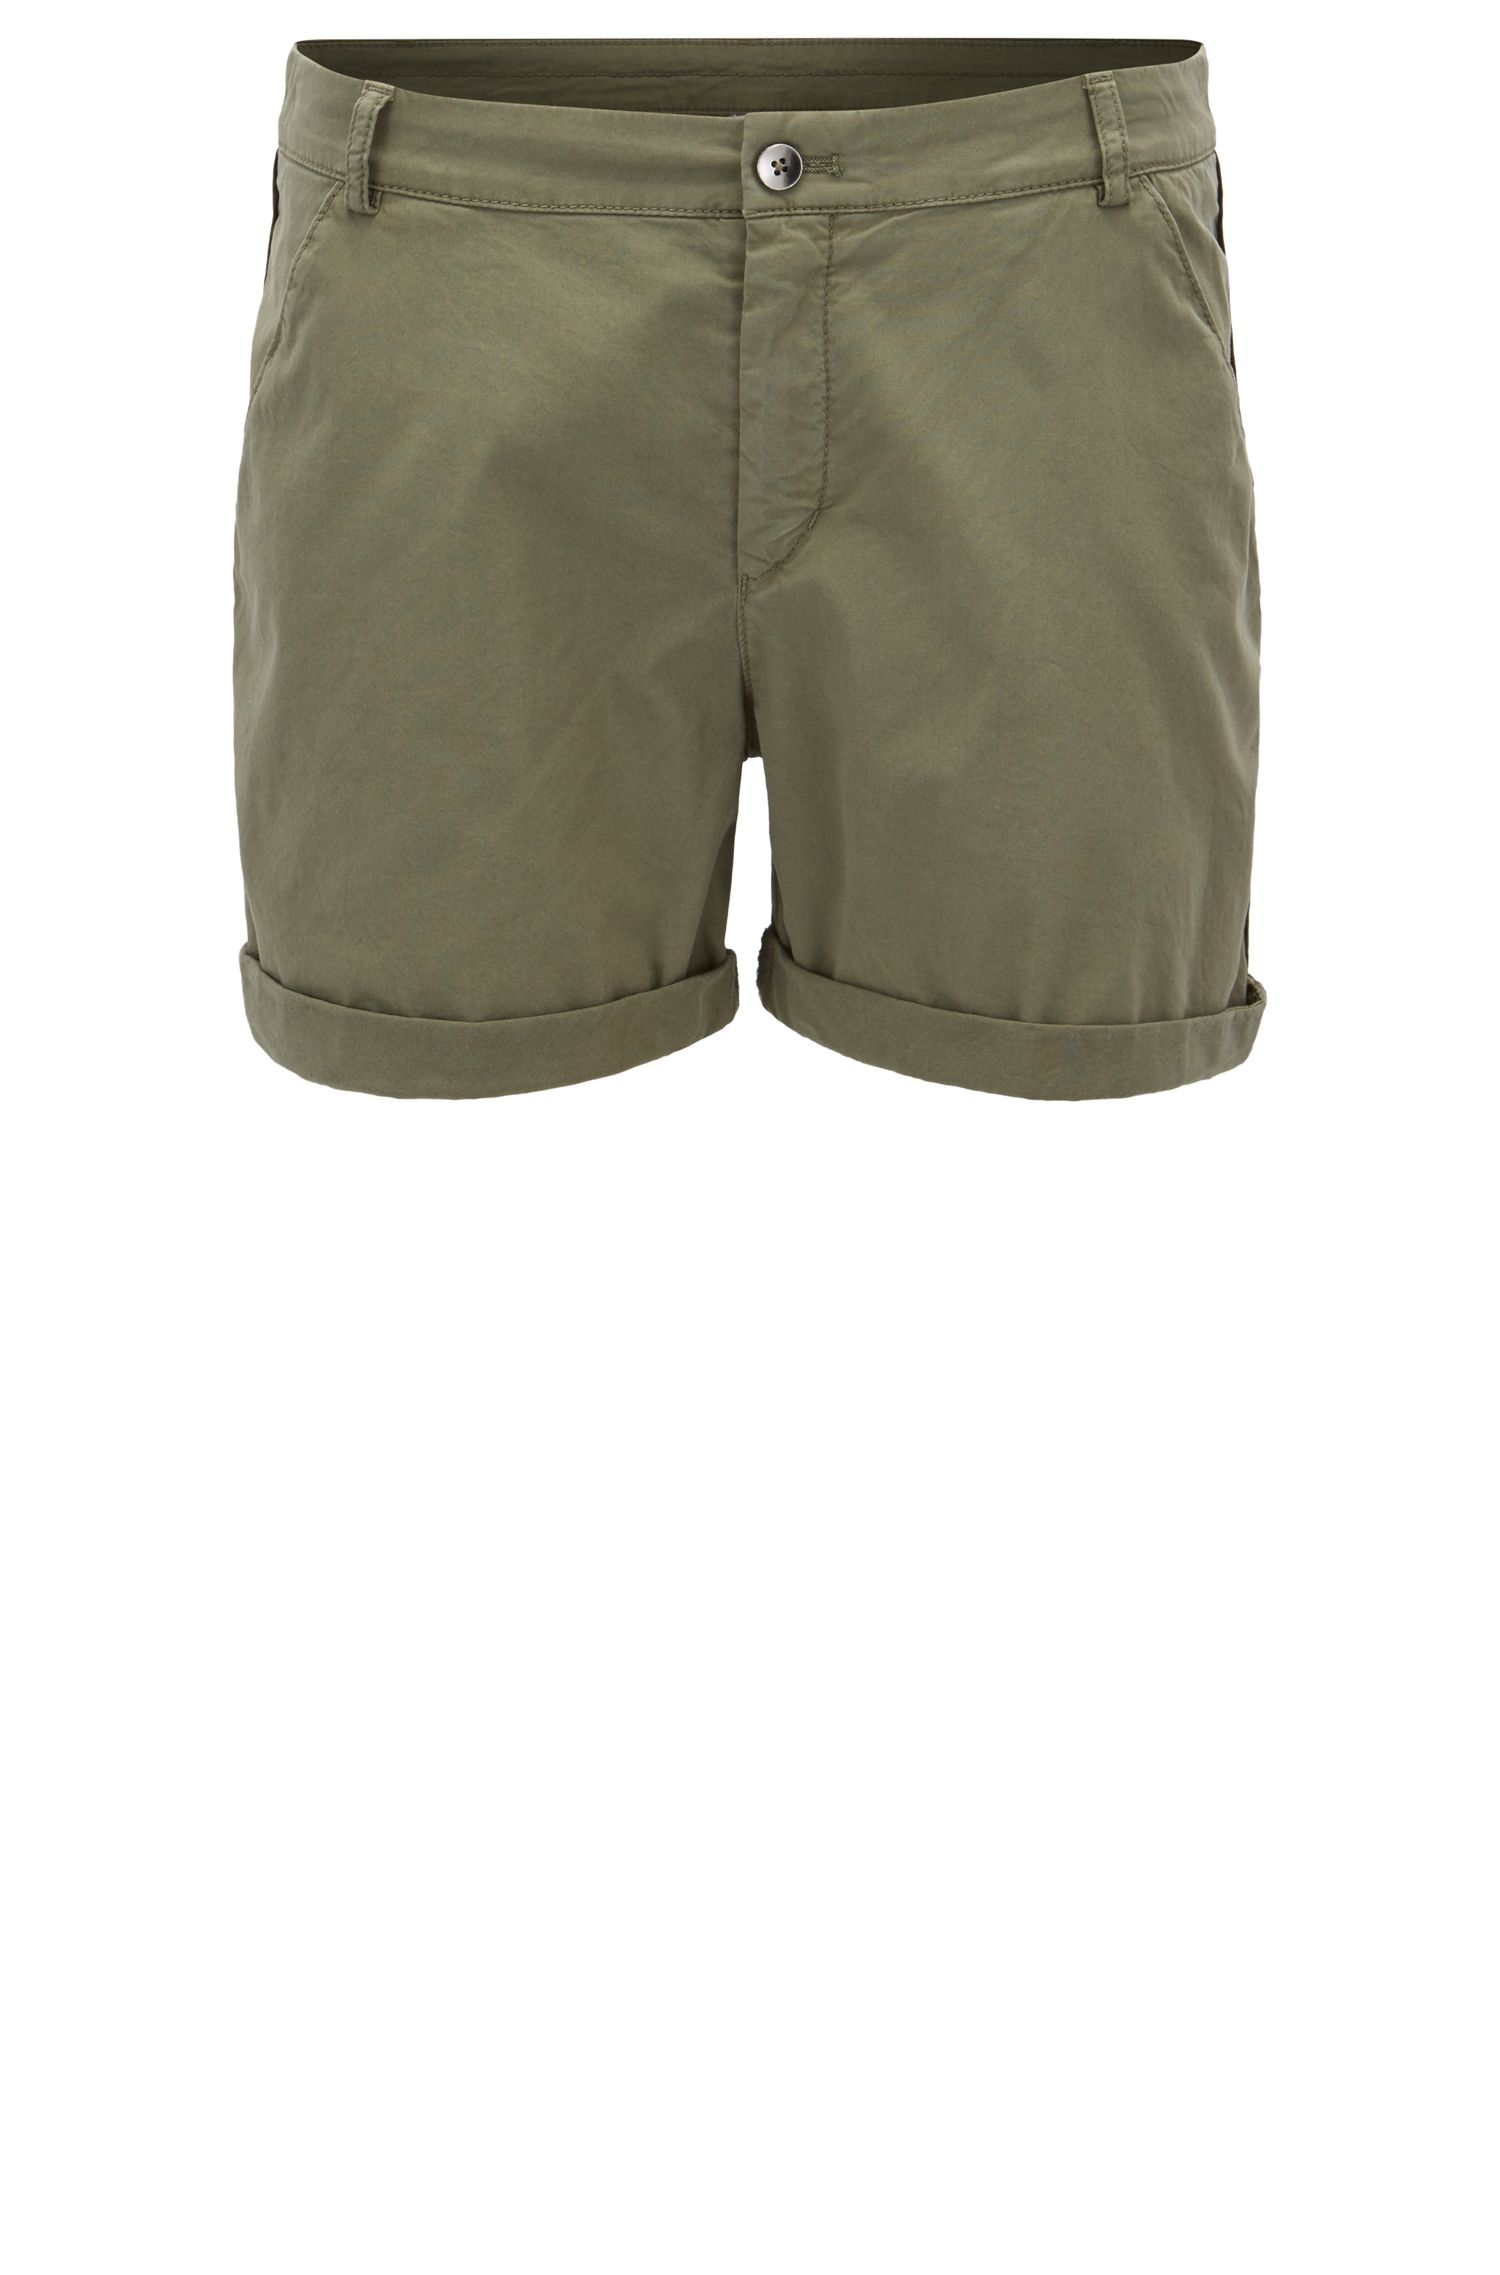 Shorts estilo chino relaxed fit en algodón elástico